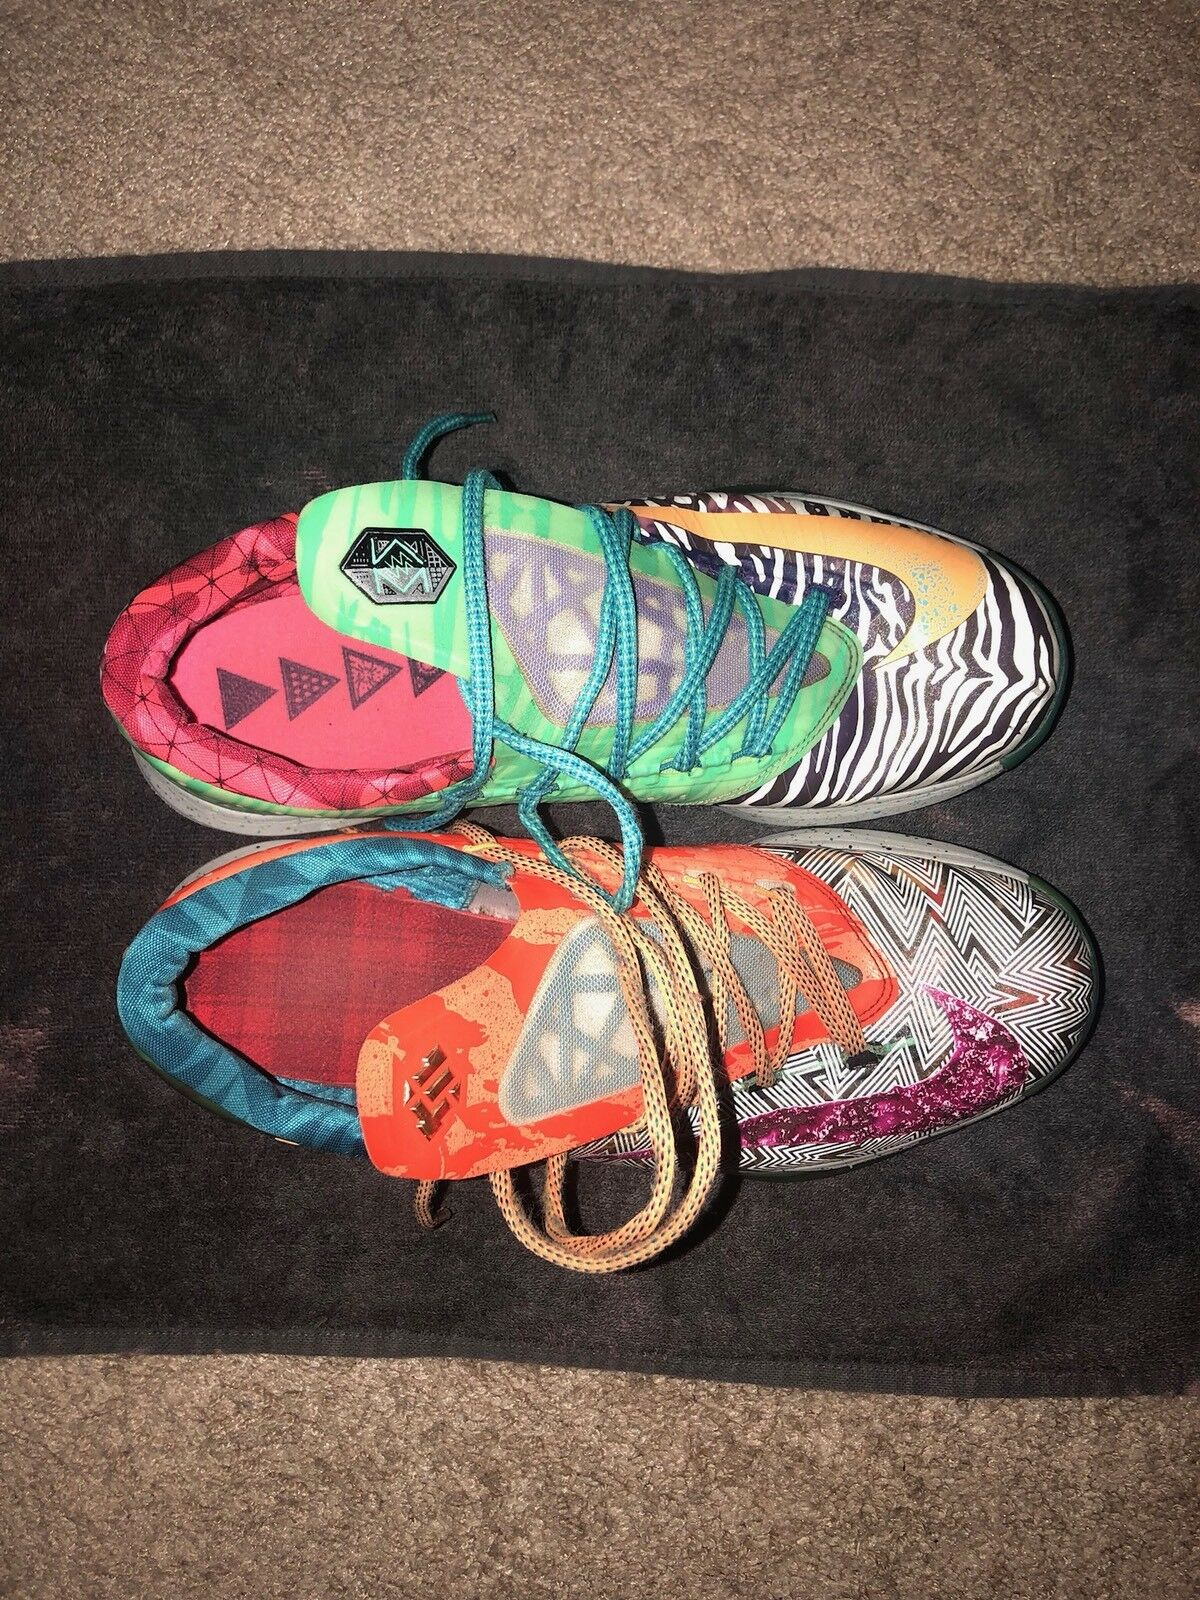 nike what the kd 6  Cheap and fashionable